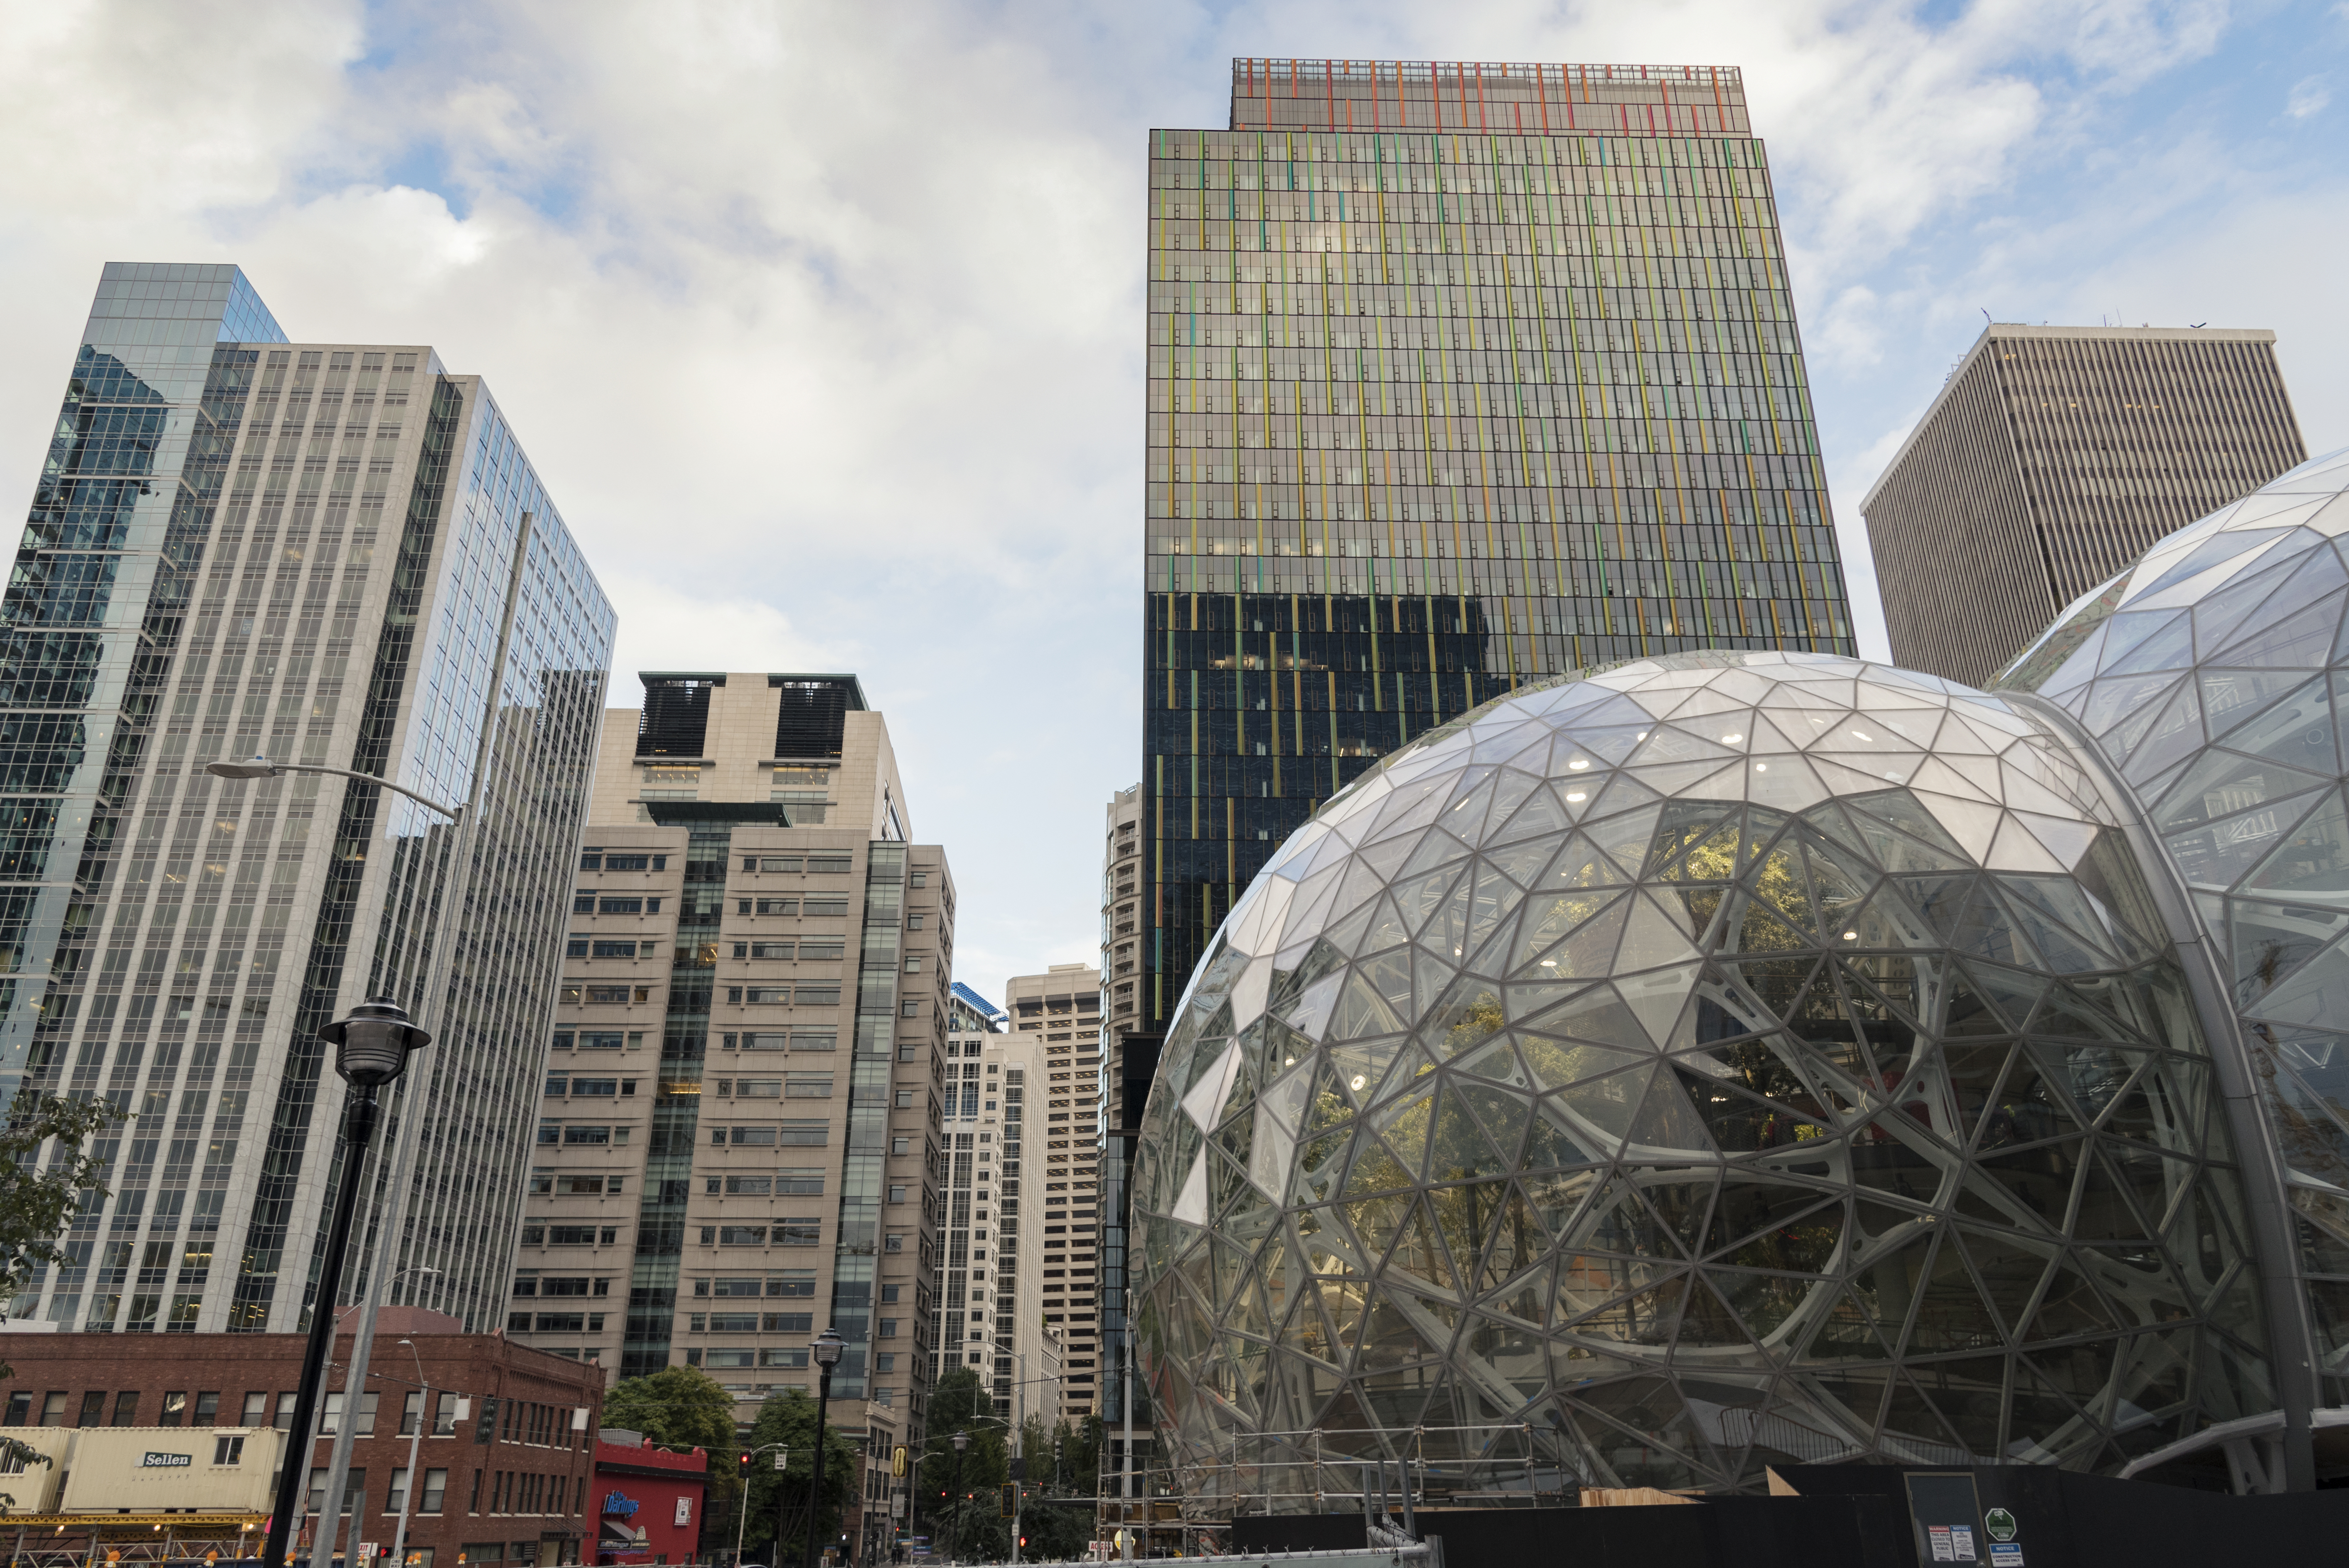 A view of Amazon's downtown campus on a cloudy day, with a main office building and the Spheres shown at the right